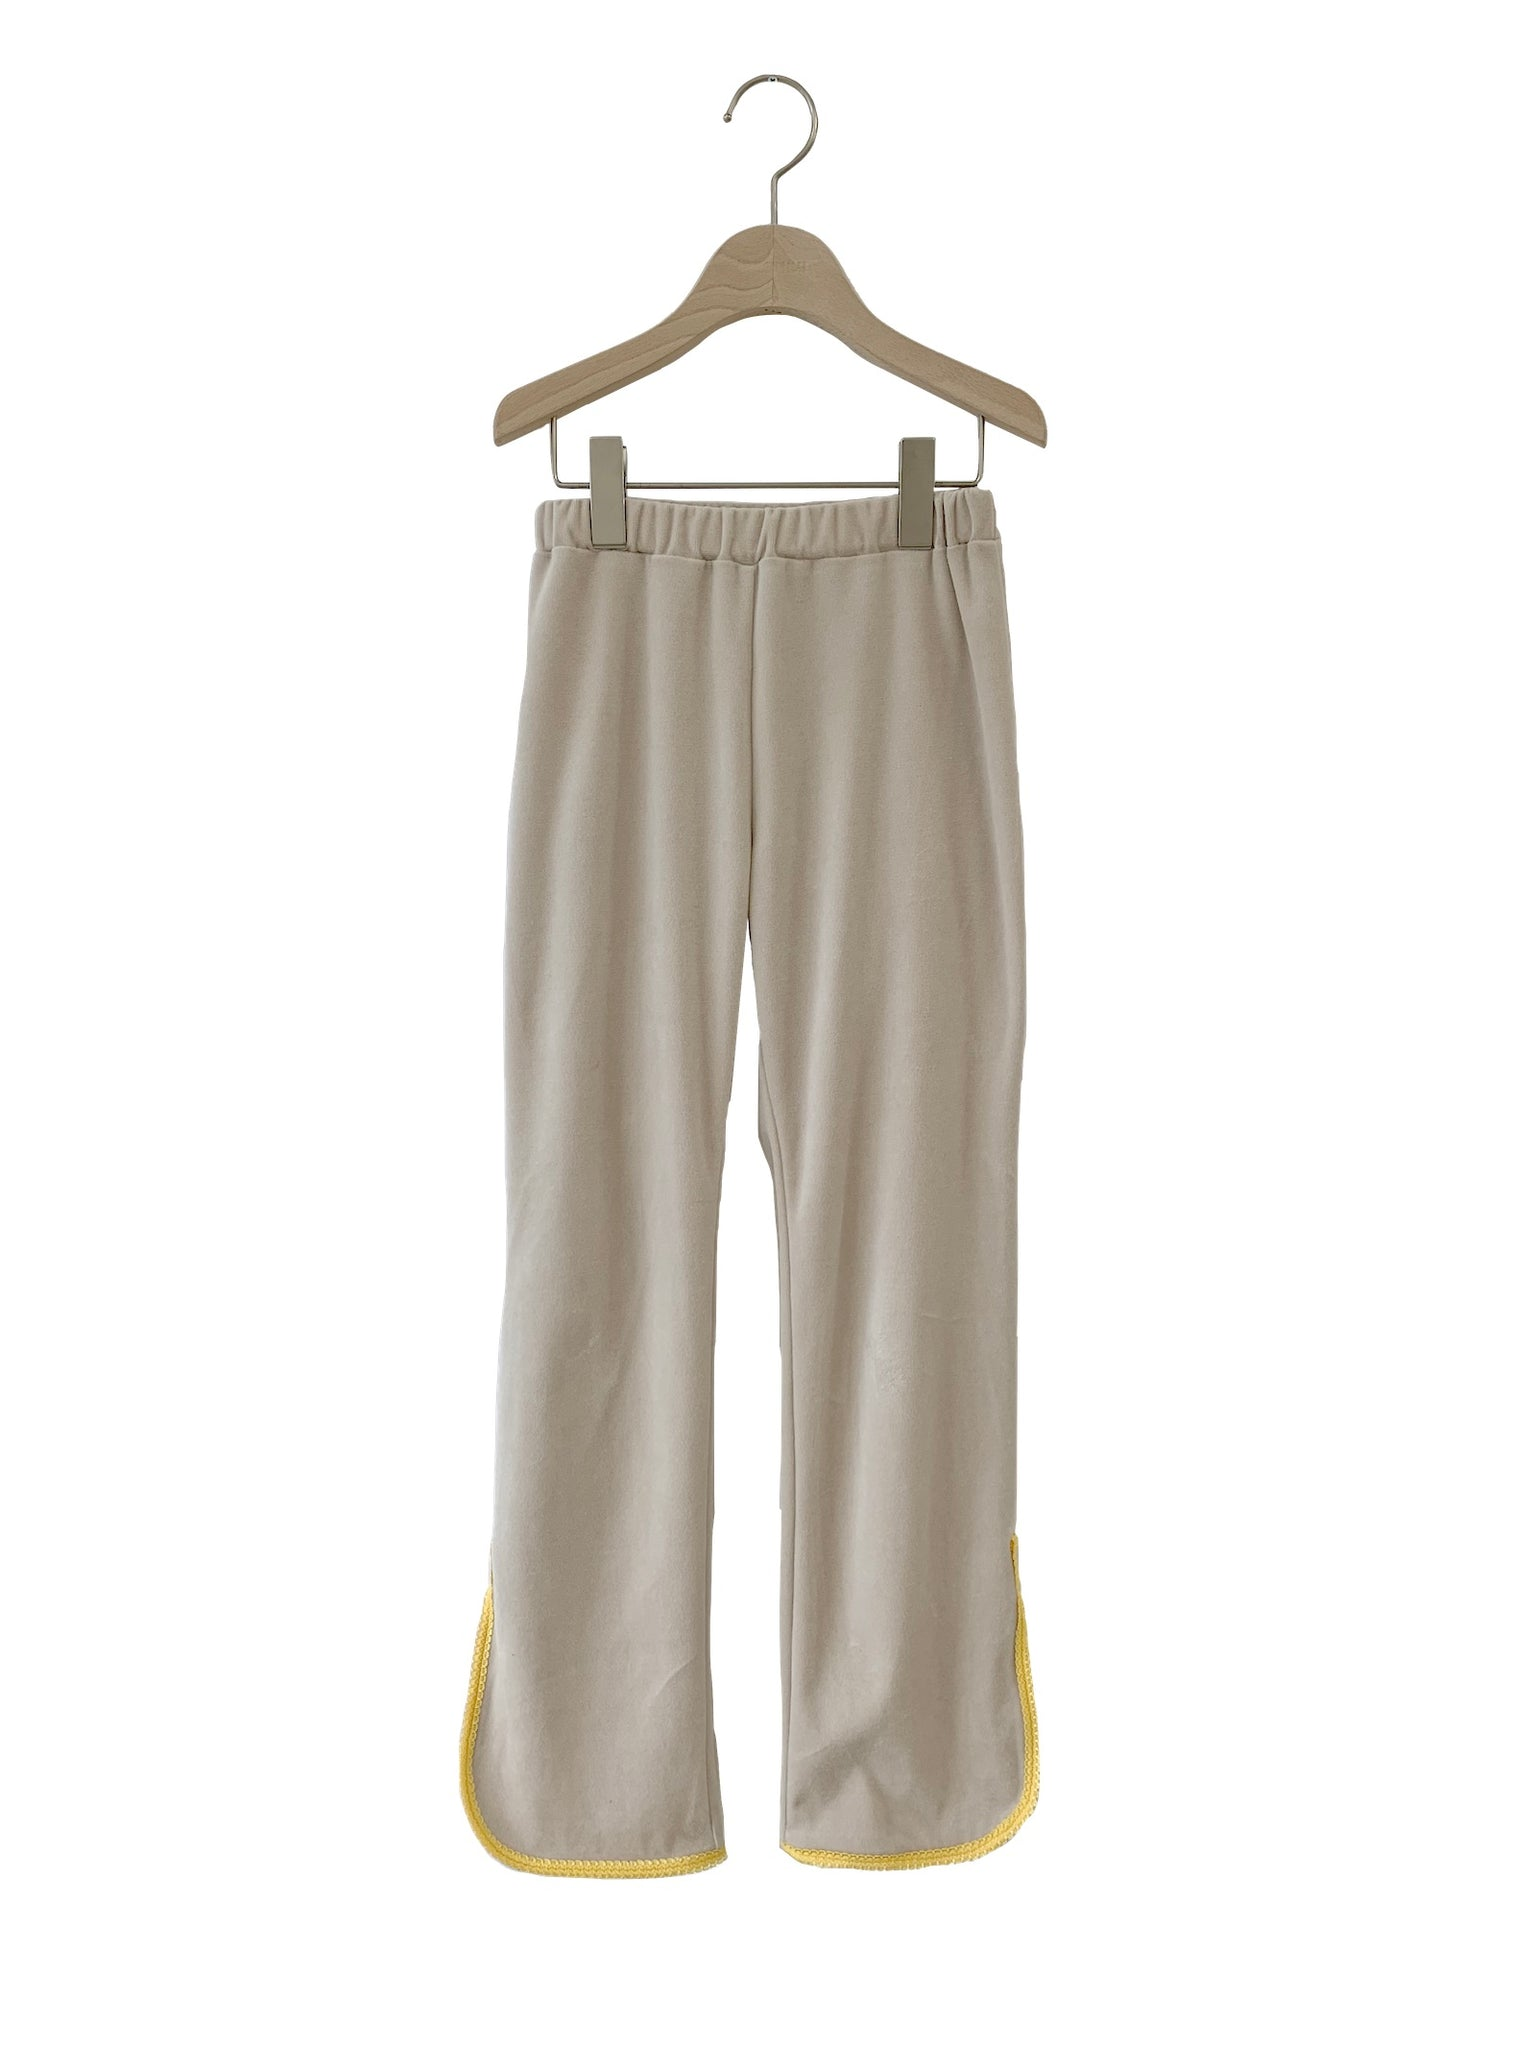 ☆reservation☆  UNIONINI / Unionini / velouers long pants (beige) pt-090 Delivery date September